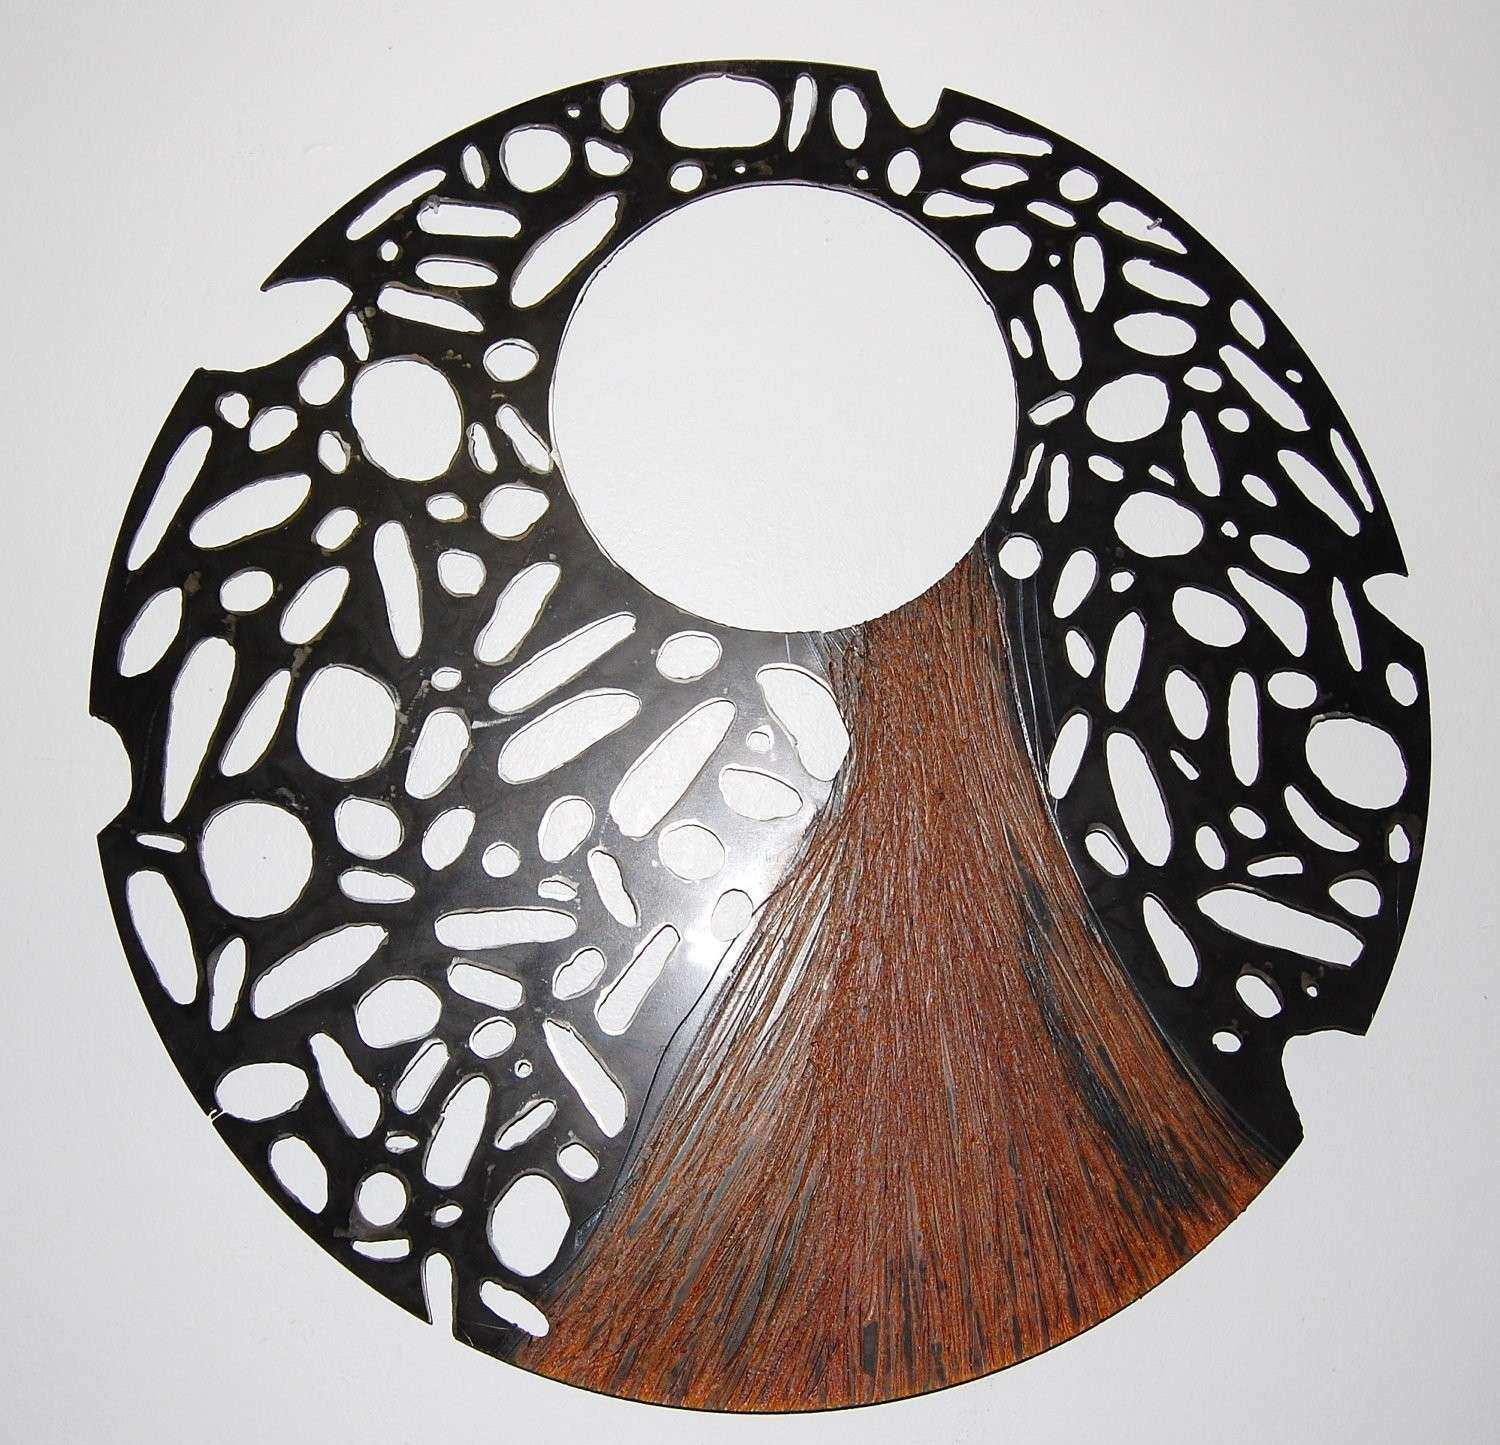 Steel Sculpture Recycled Metal Wall Art Round